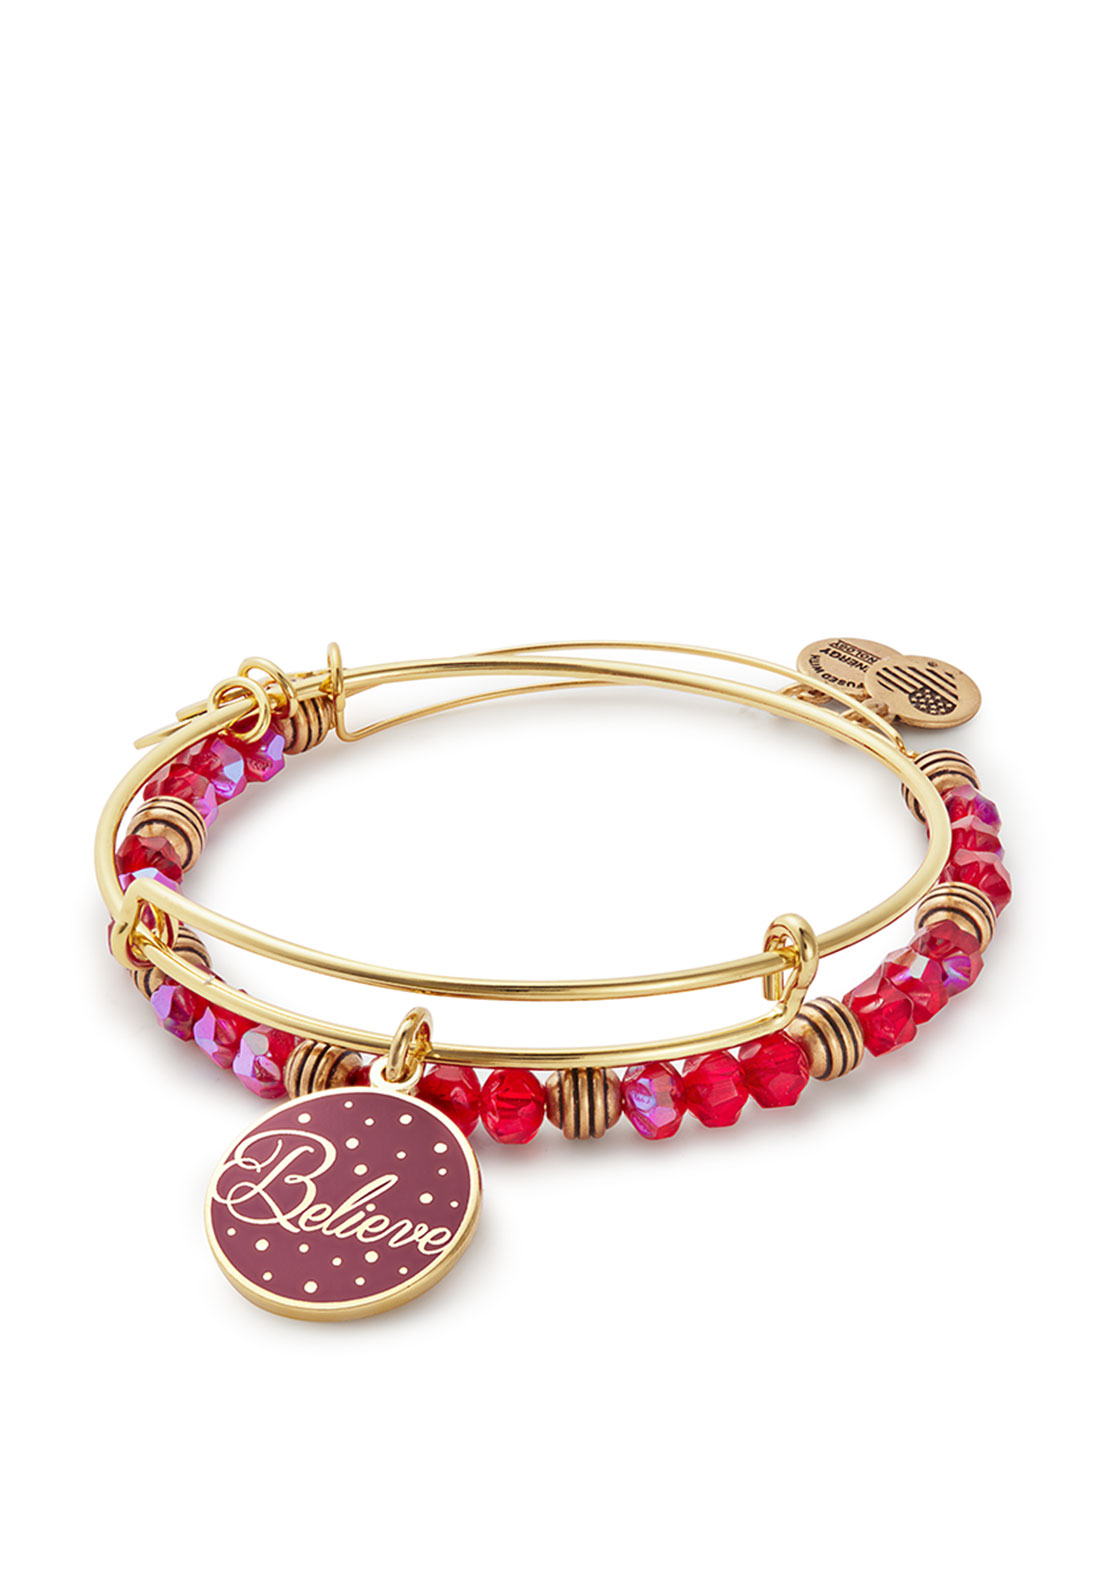 Alex and Ani Believe Set of 2 Expandable Bangles, Gold